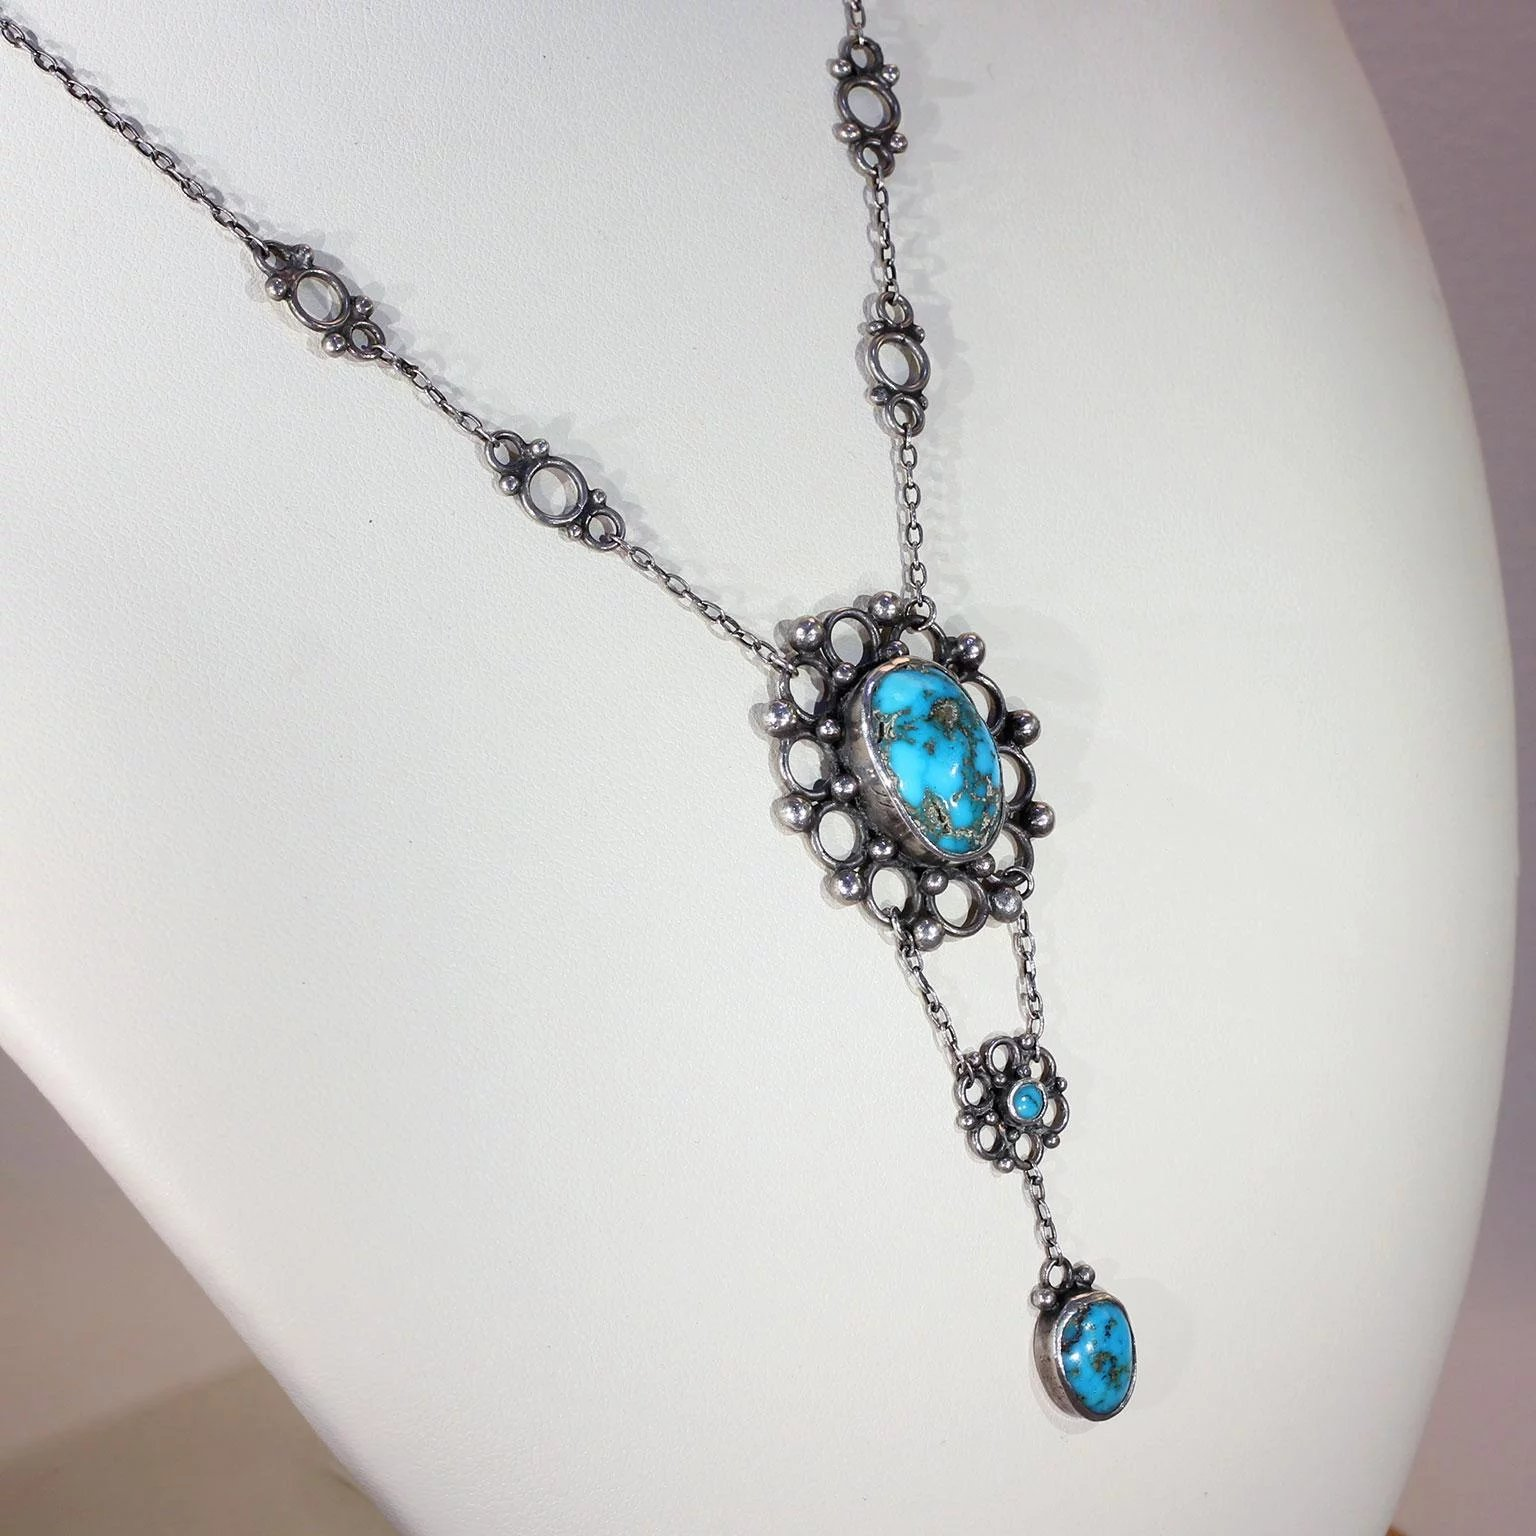 Antique Arts & Crafts Turquoise Silver Necklace by the ...